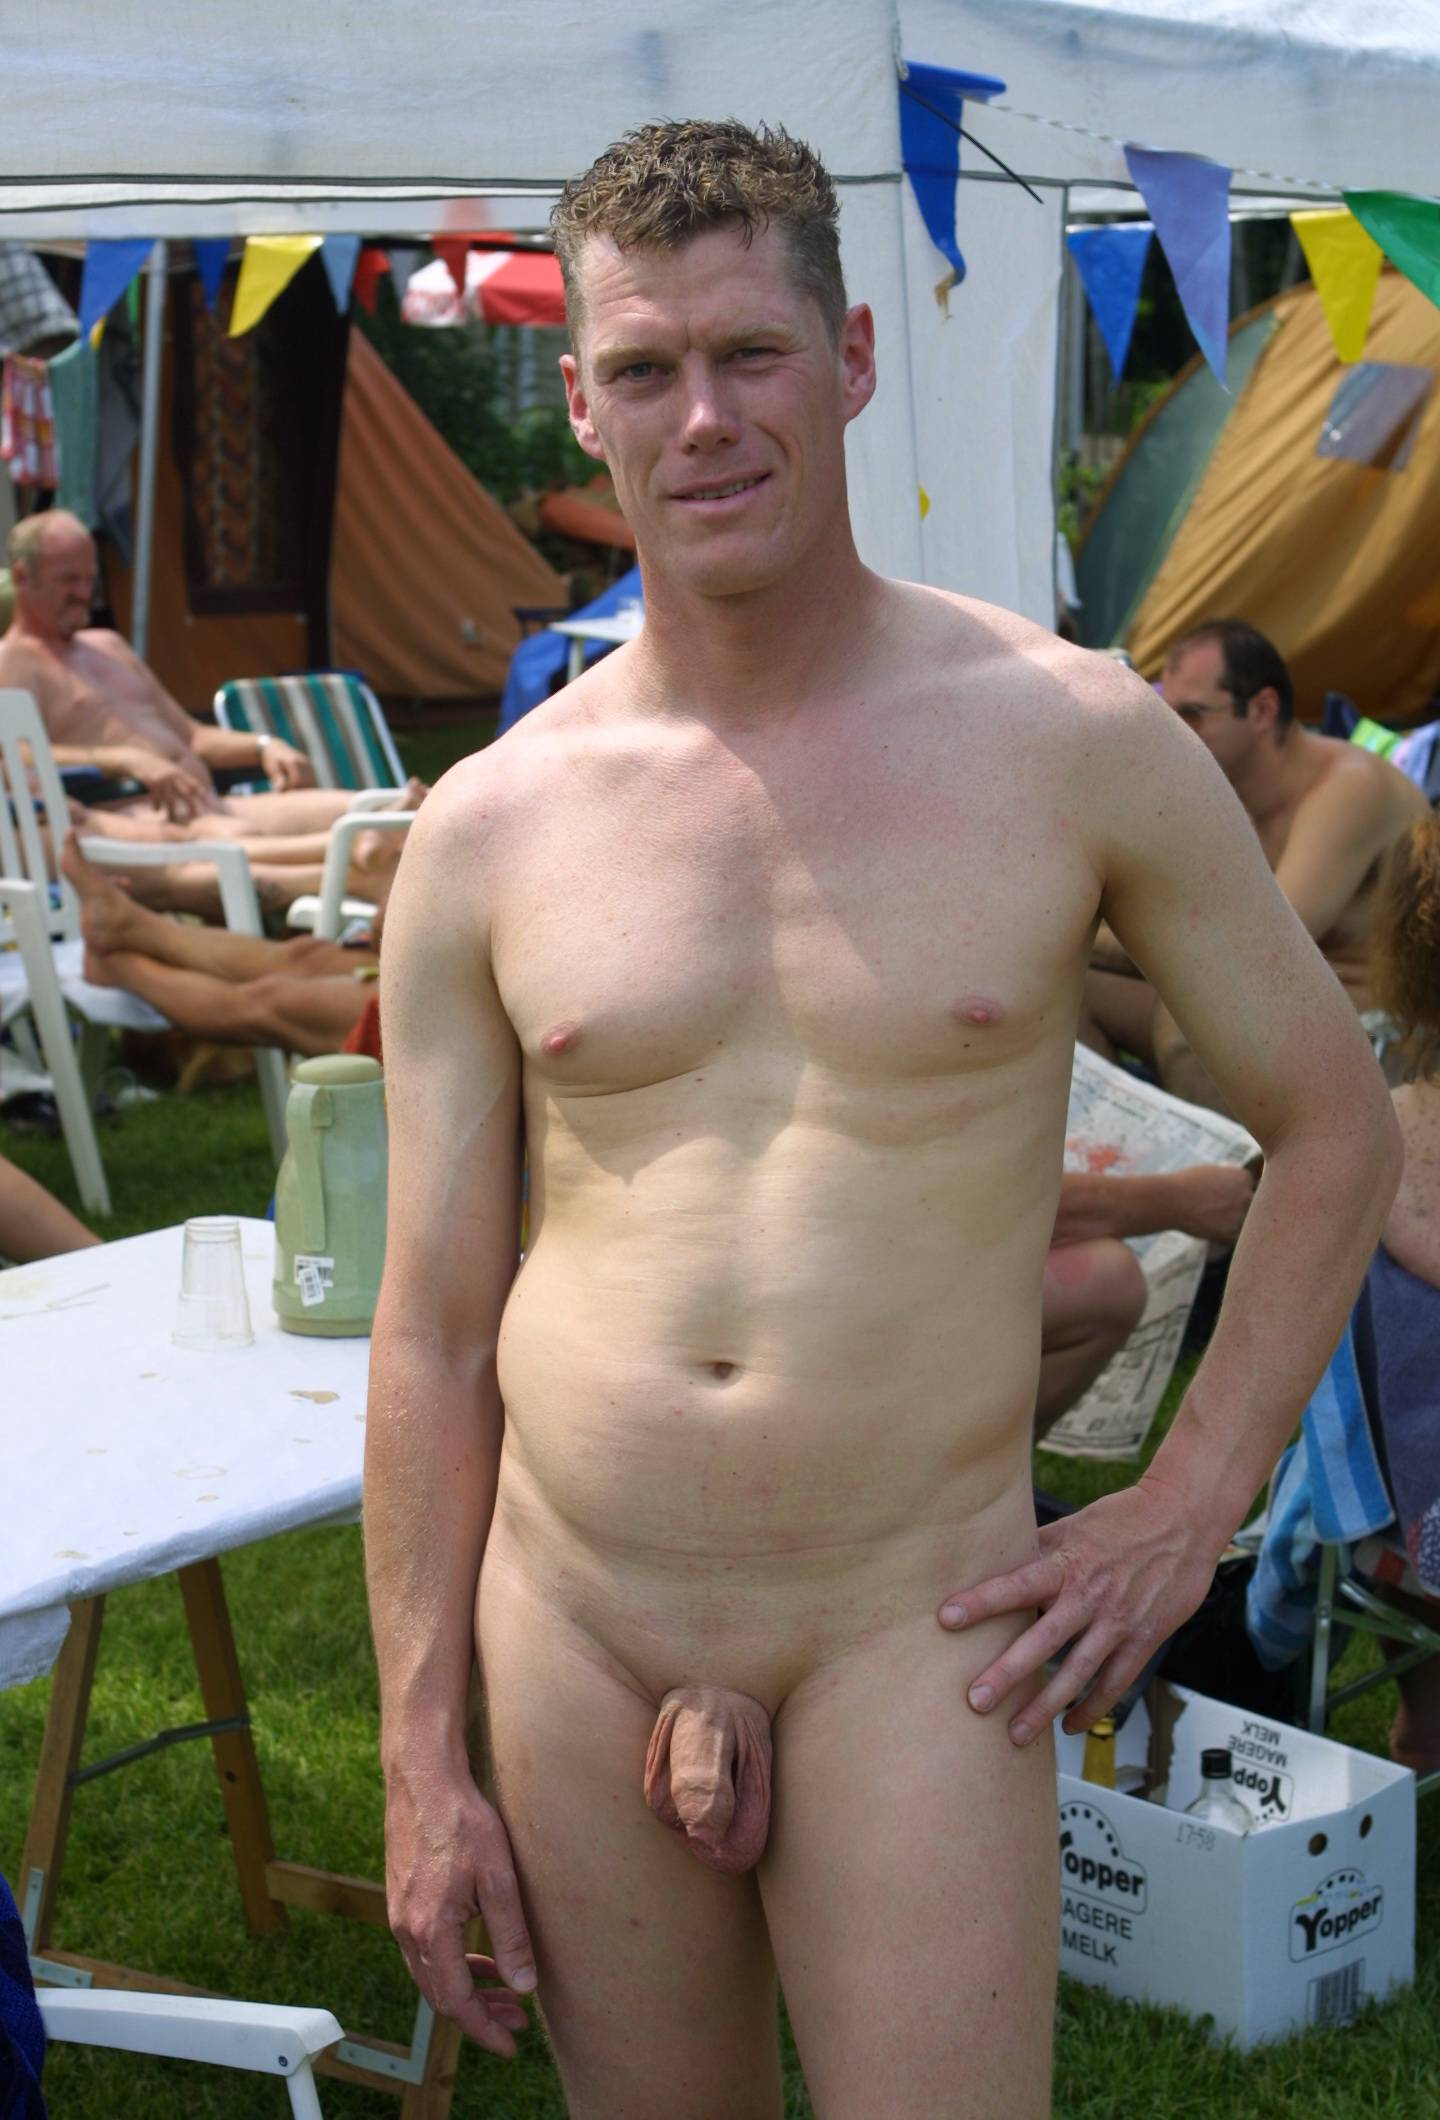 Nudist Pics Holland Picnic Relaxation - 2